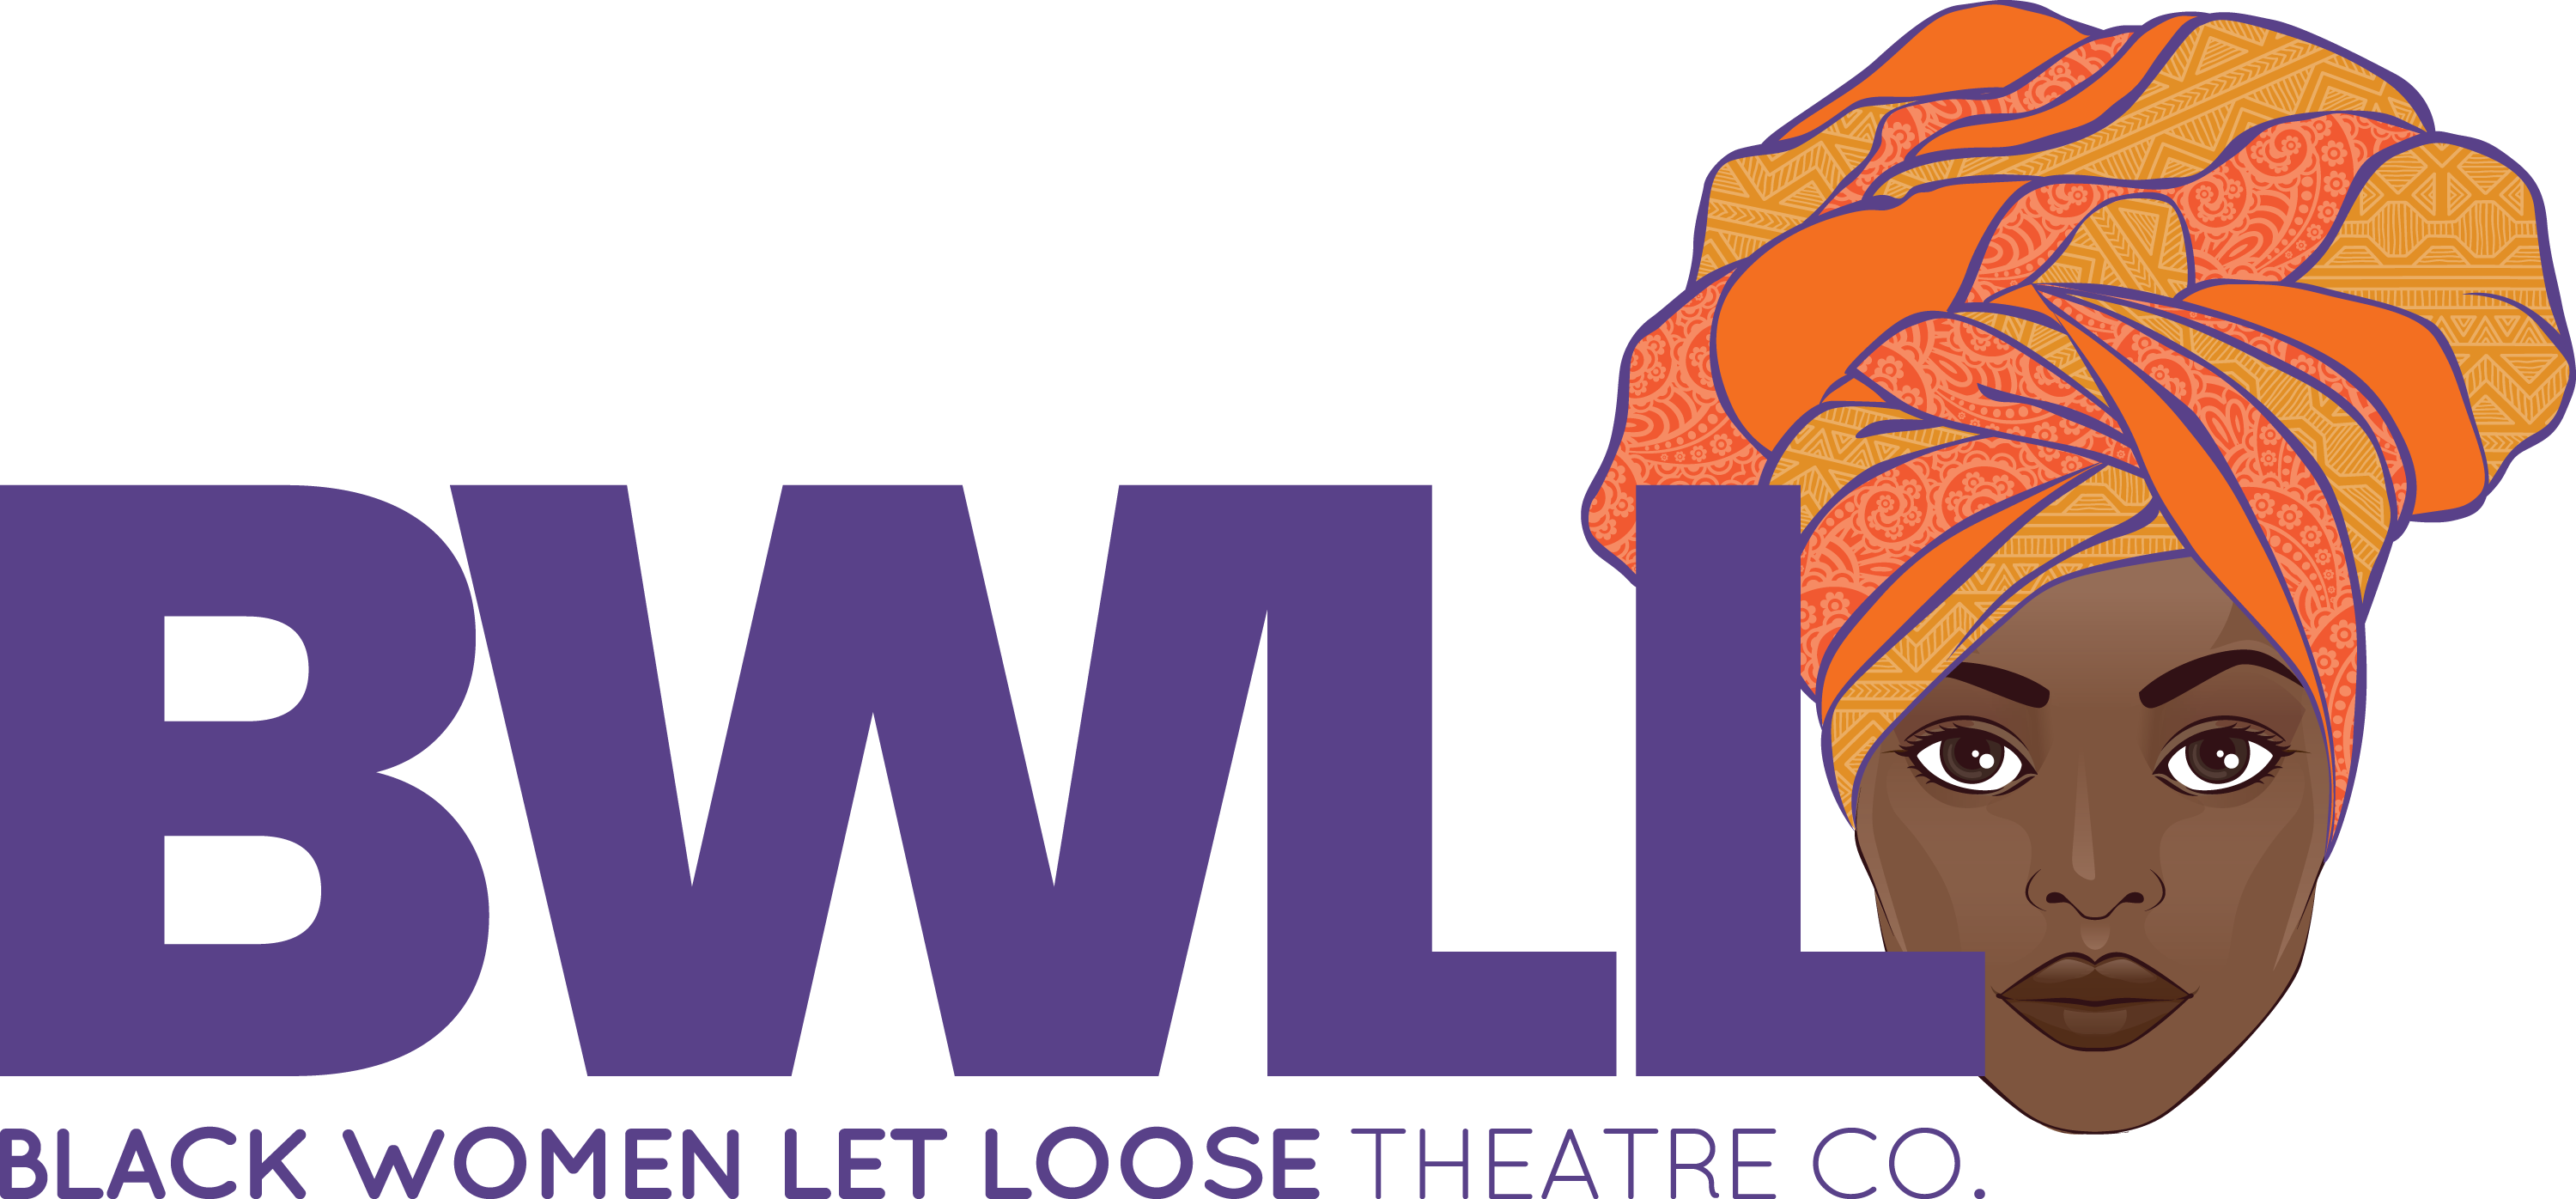 BWLL Theatre Group